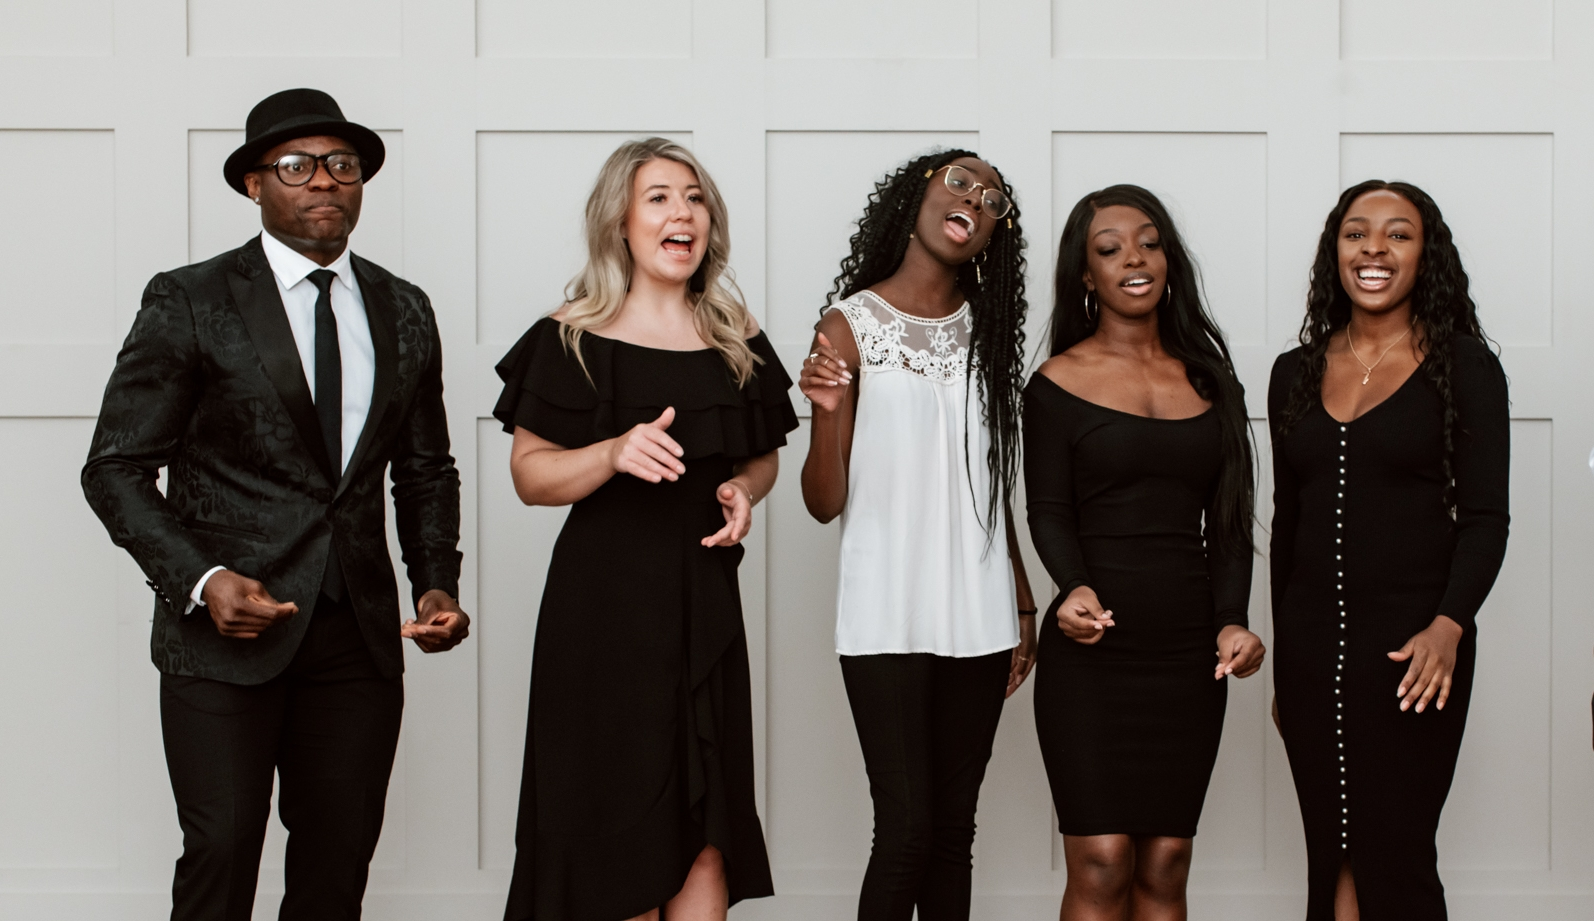 Eclectic Harmony Gospel Choir